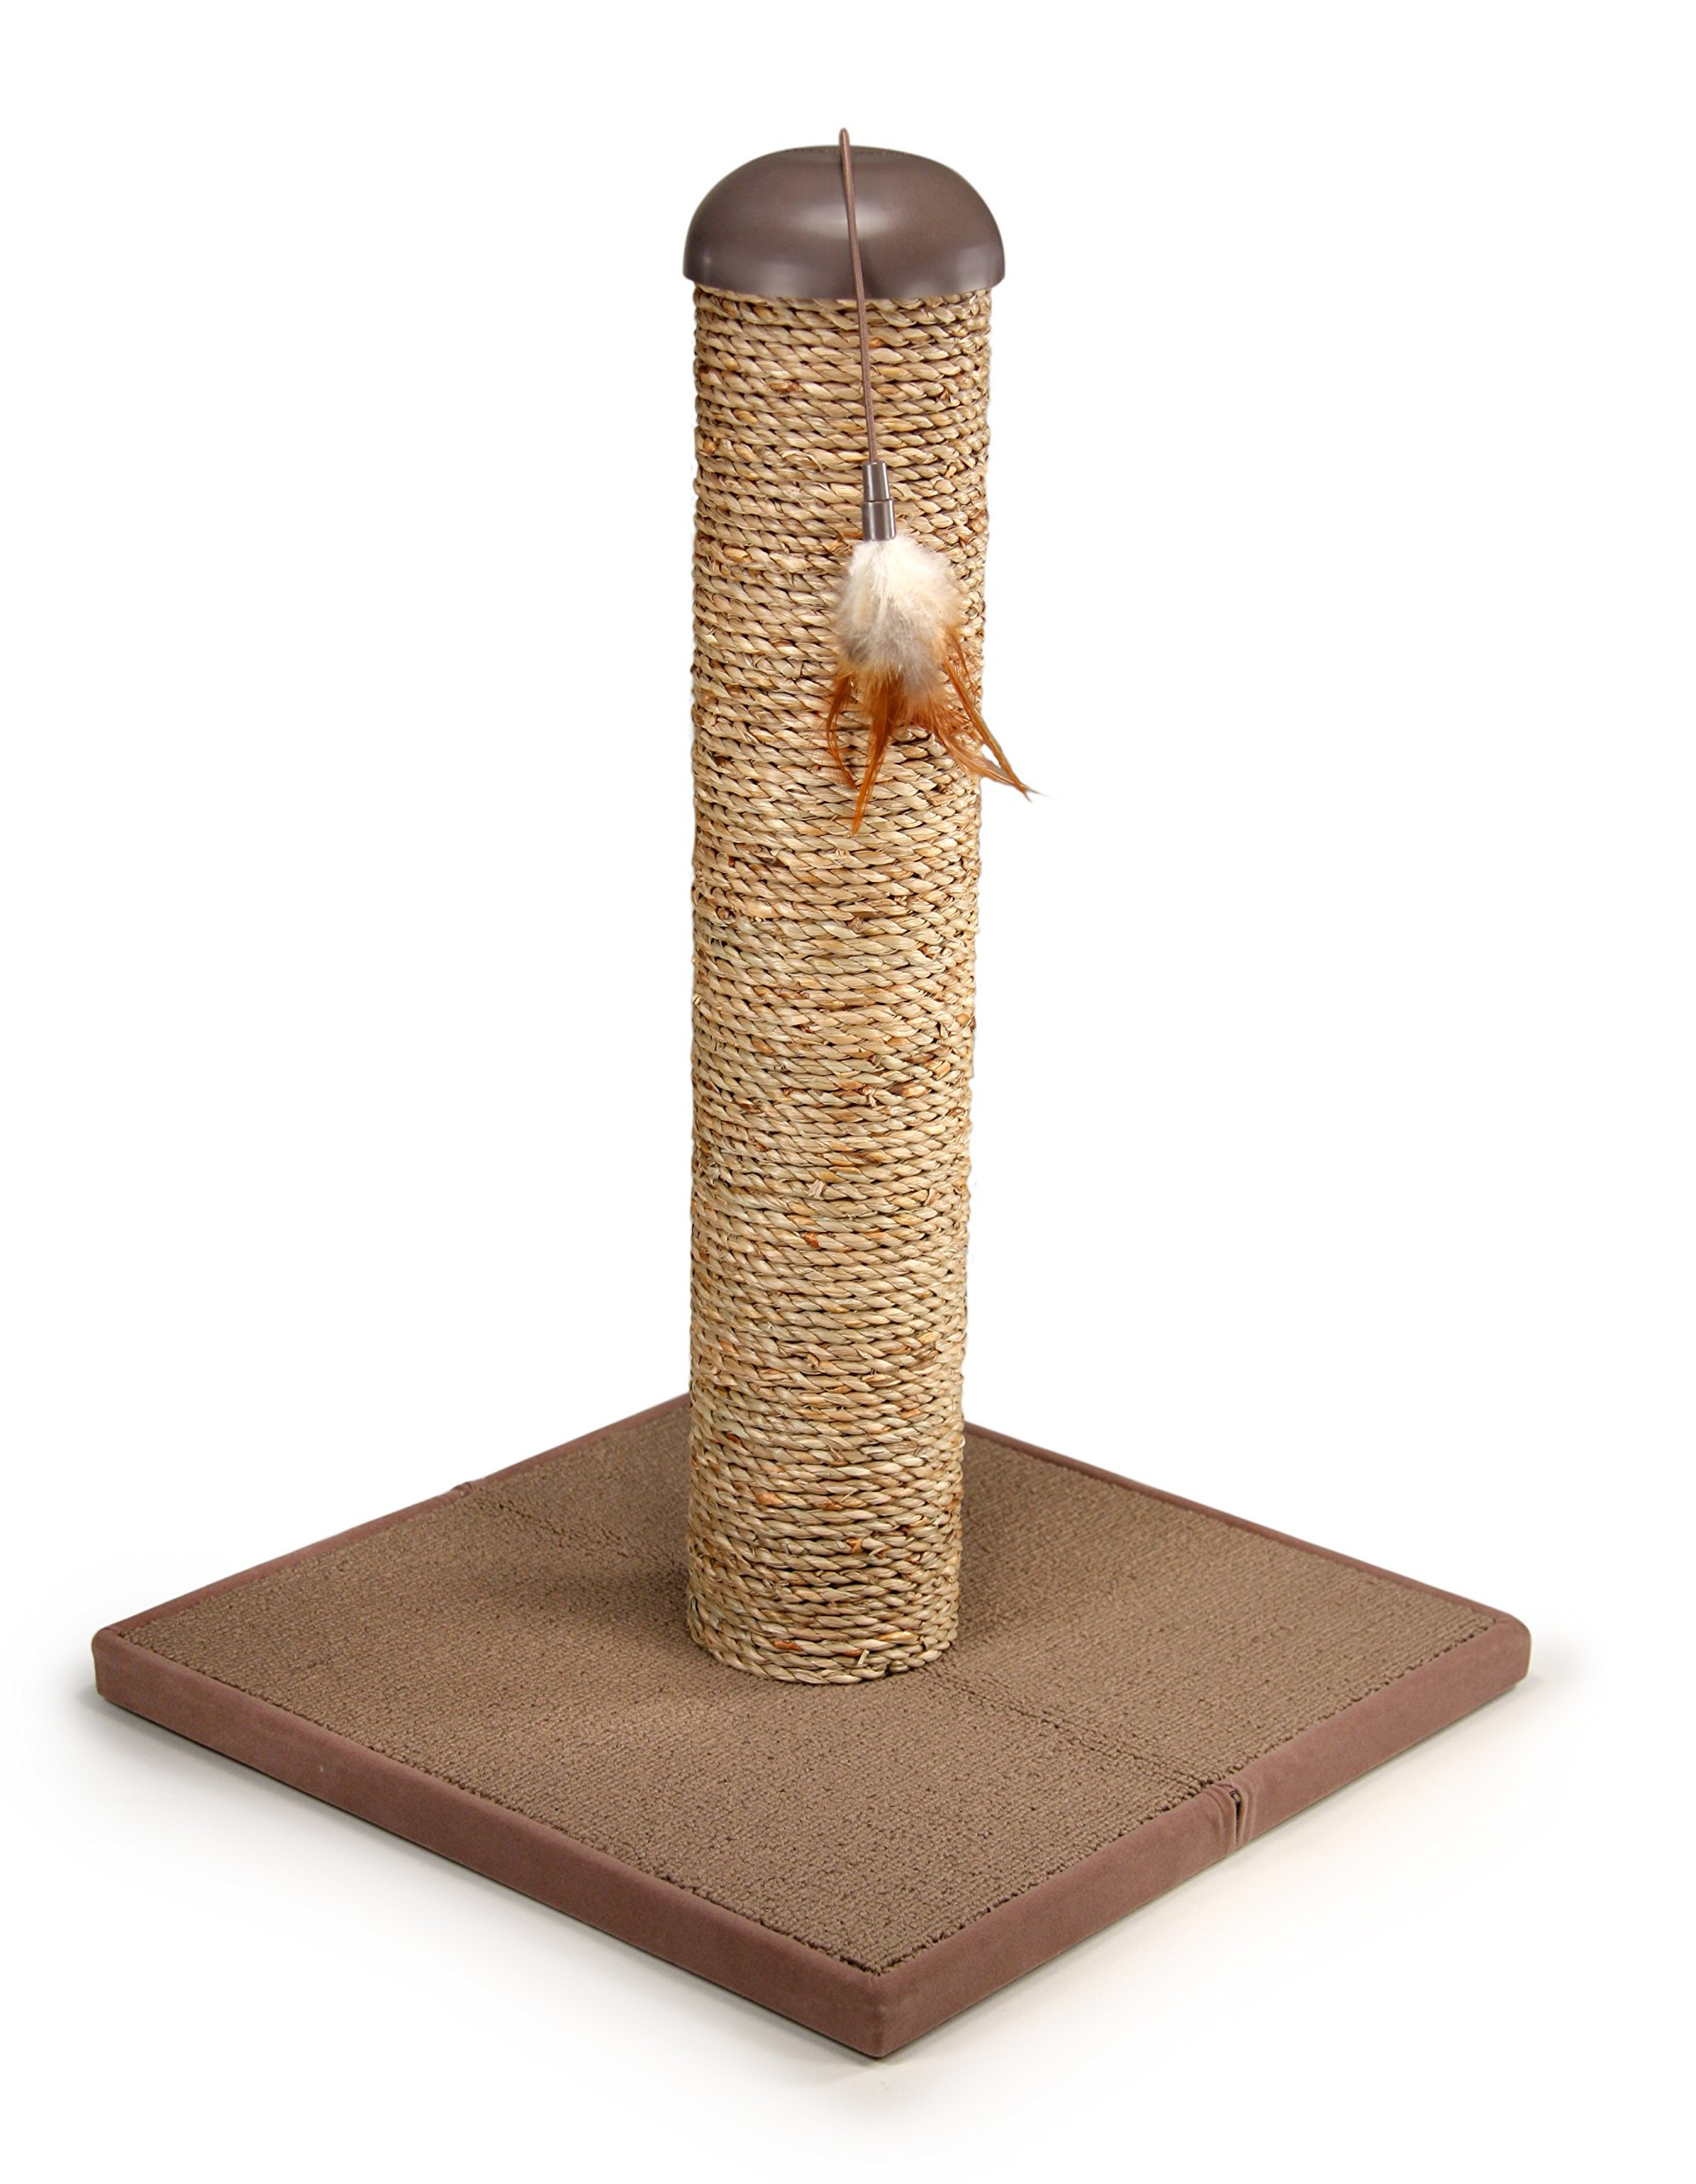 SmartyKat SeaColumn Seagrass Cat Scratch Post with Snap2It Toy by SmartyKat